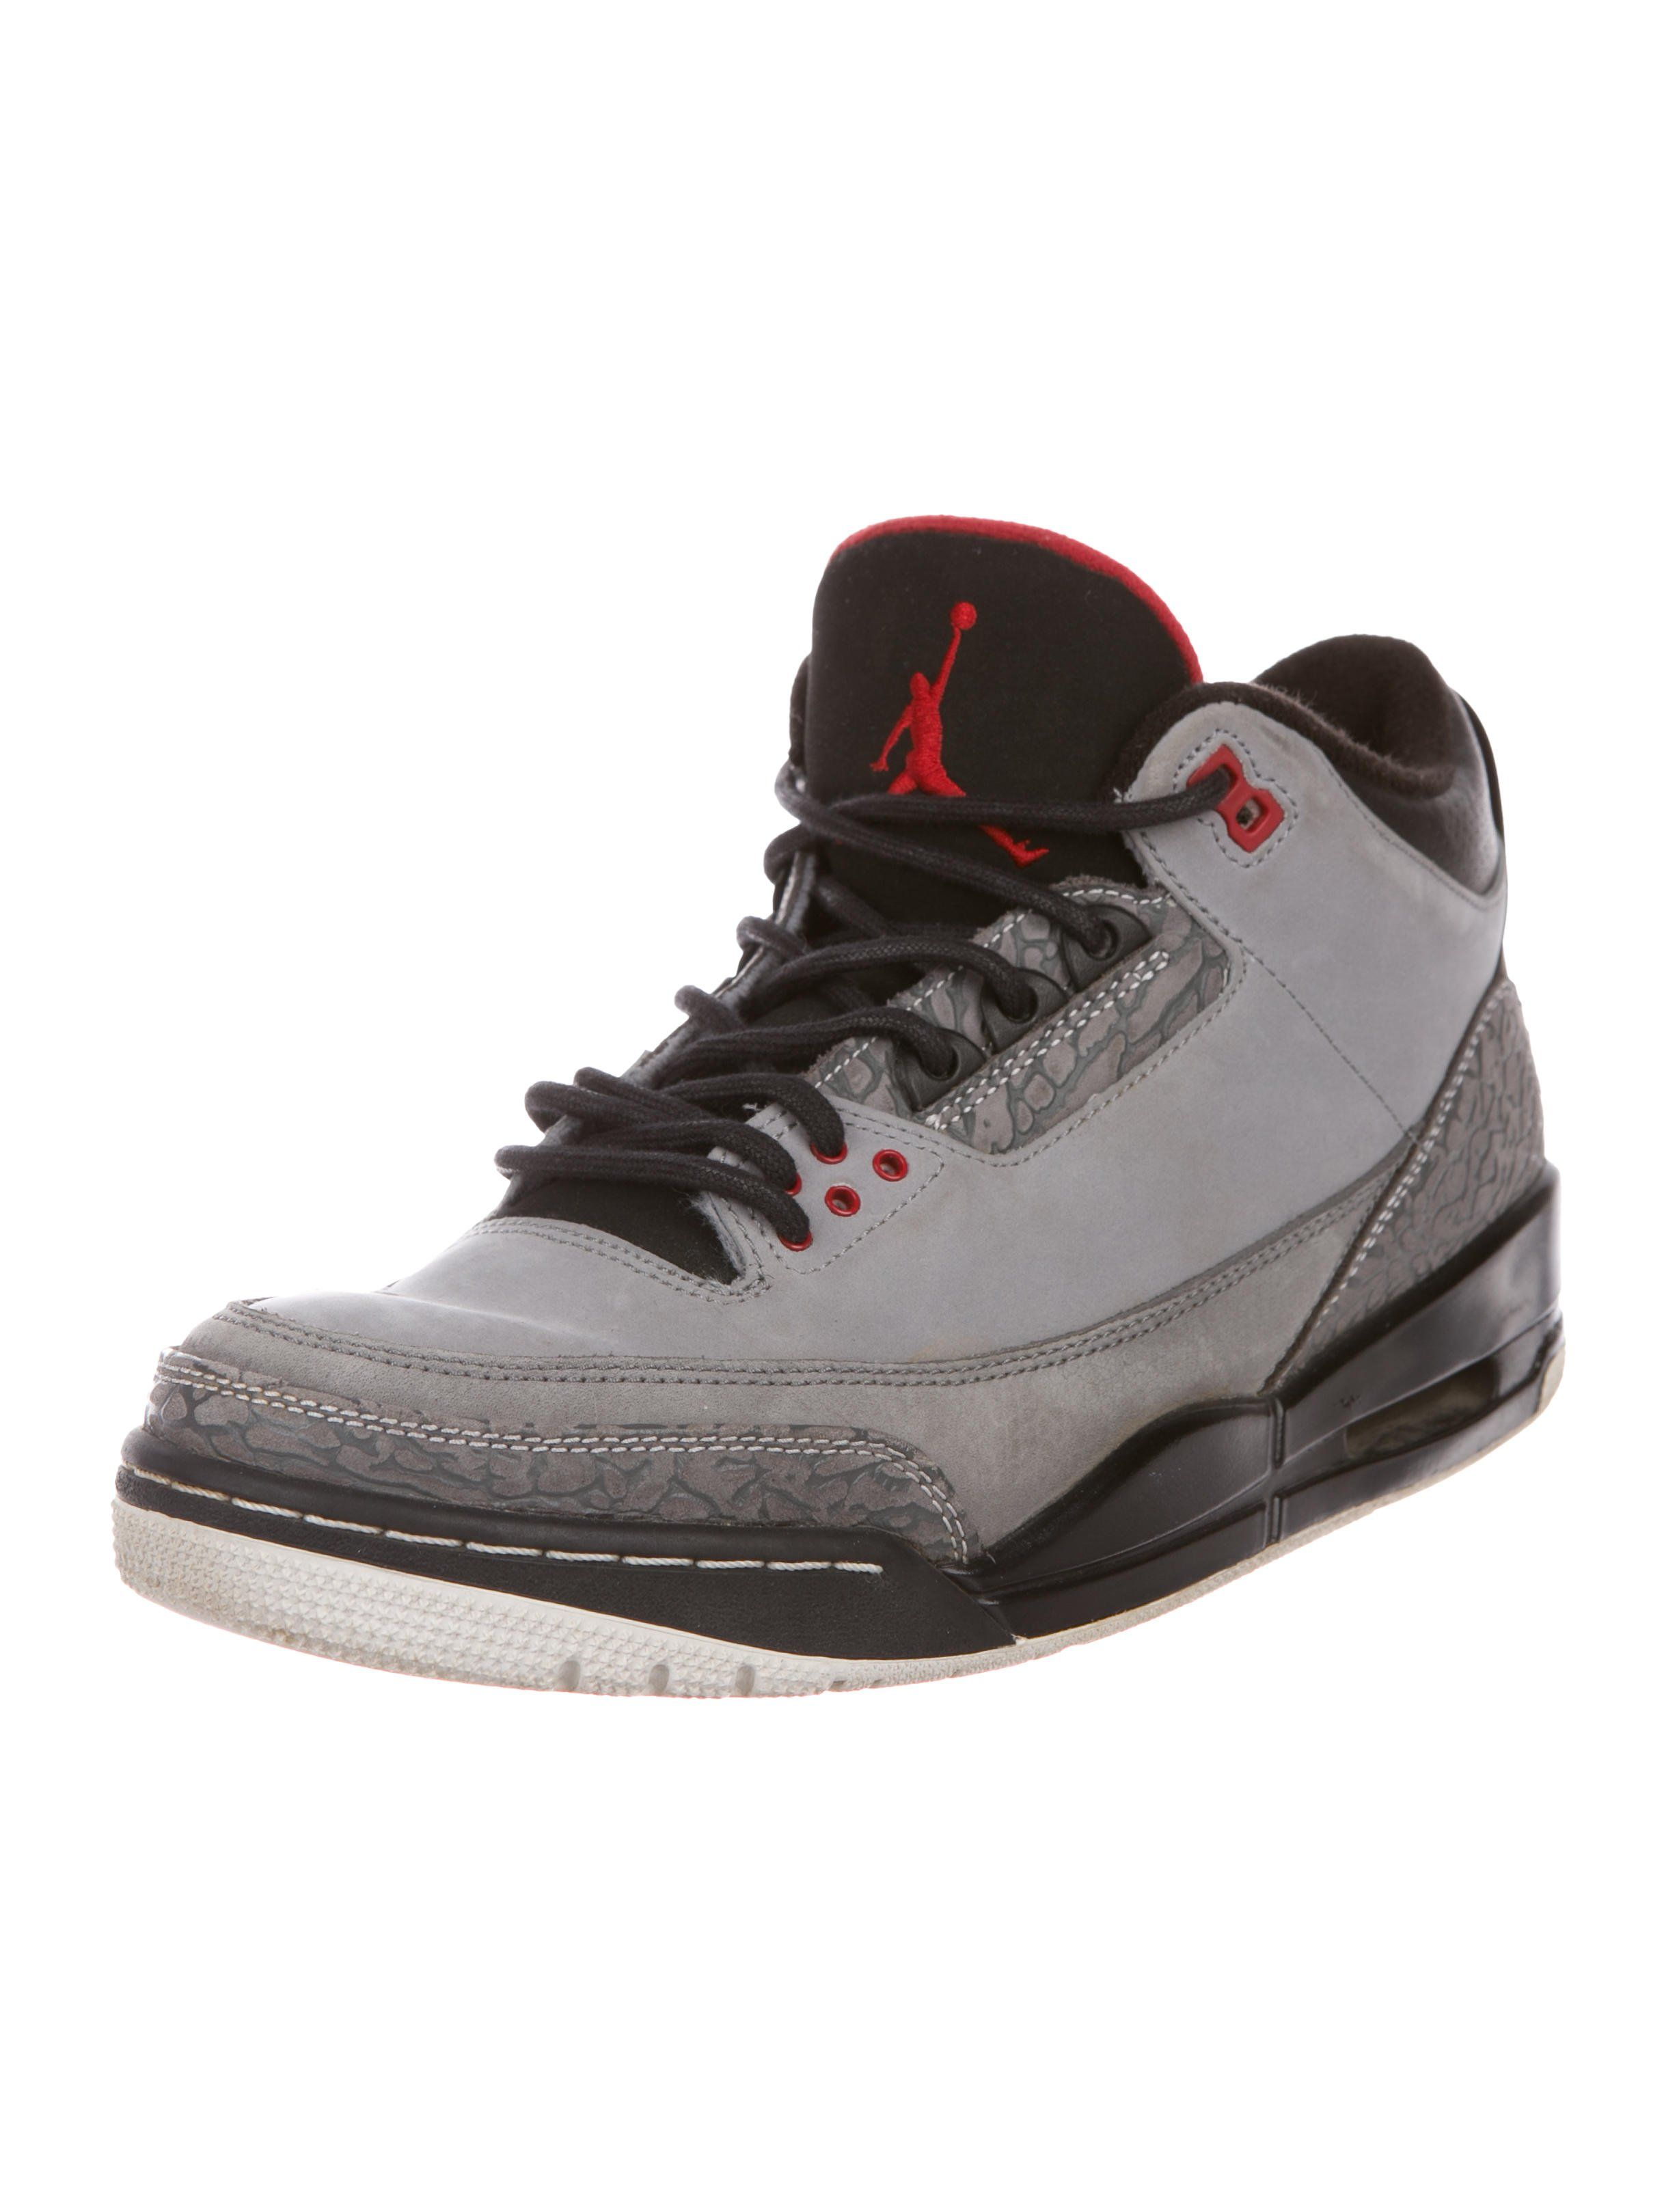 sports shoes 885ce 709e7 Men s grey suede Nike Air Jordan 3 Retro Stealth round-toe mid-top sneakers  with cement print, signature Jumpman at tongues and counters, rubber soles  and